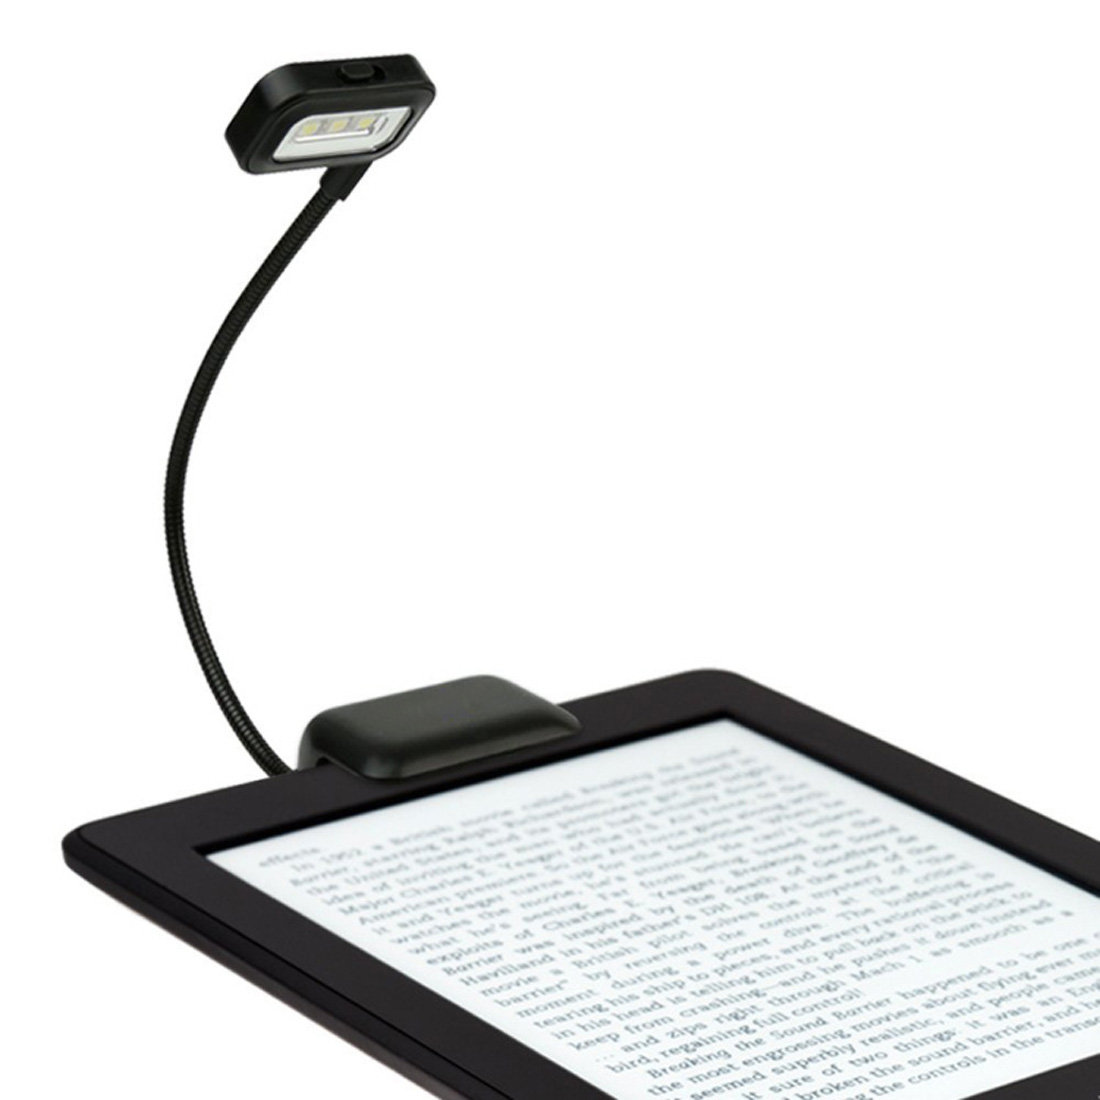 0.5W Portable Lamp Flexible Mini Clip On Reading Light Reading Lamp For Amazon Kindle/eBook Readers/ PDAs